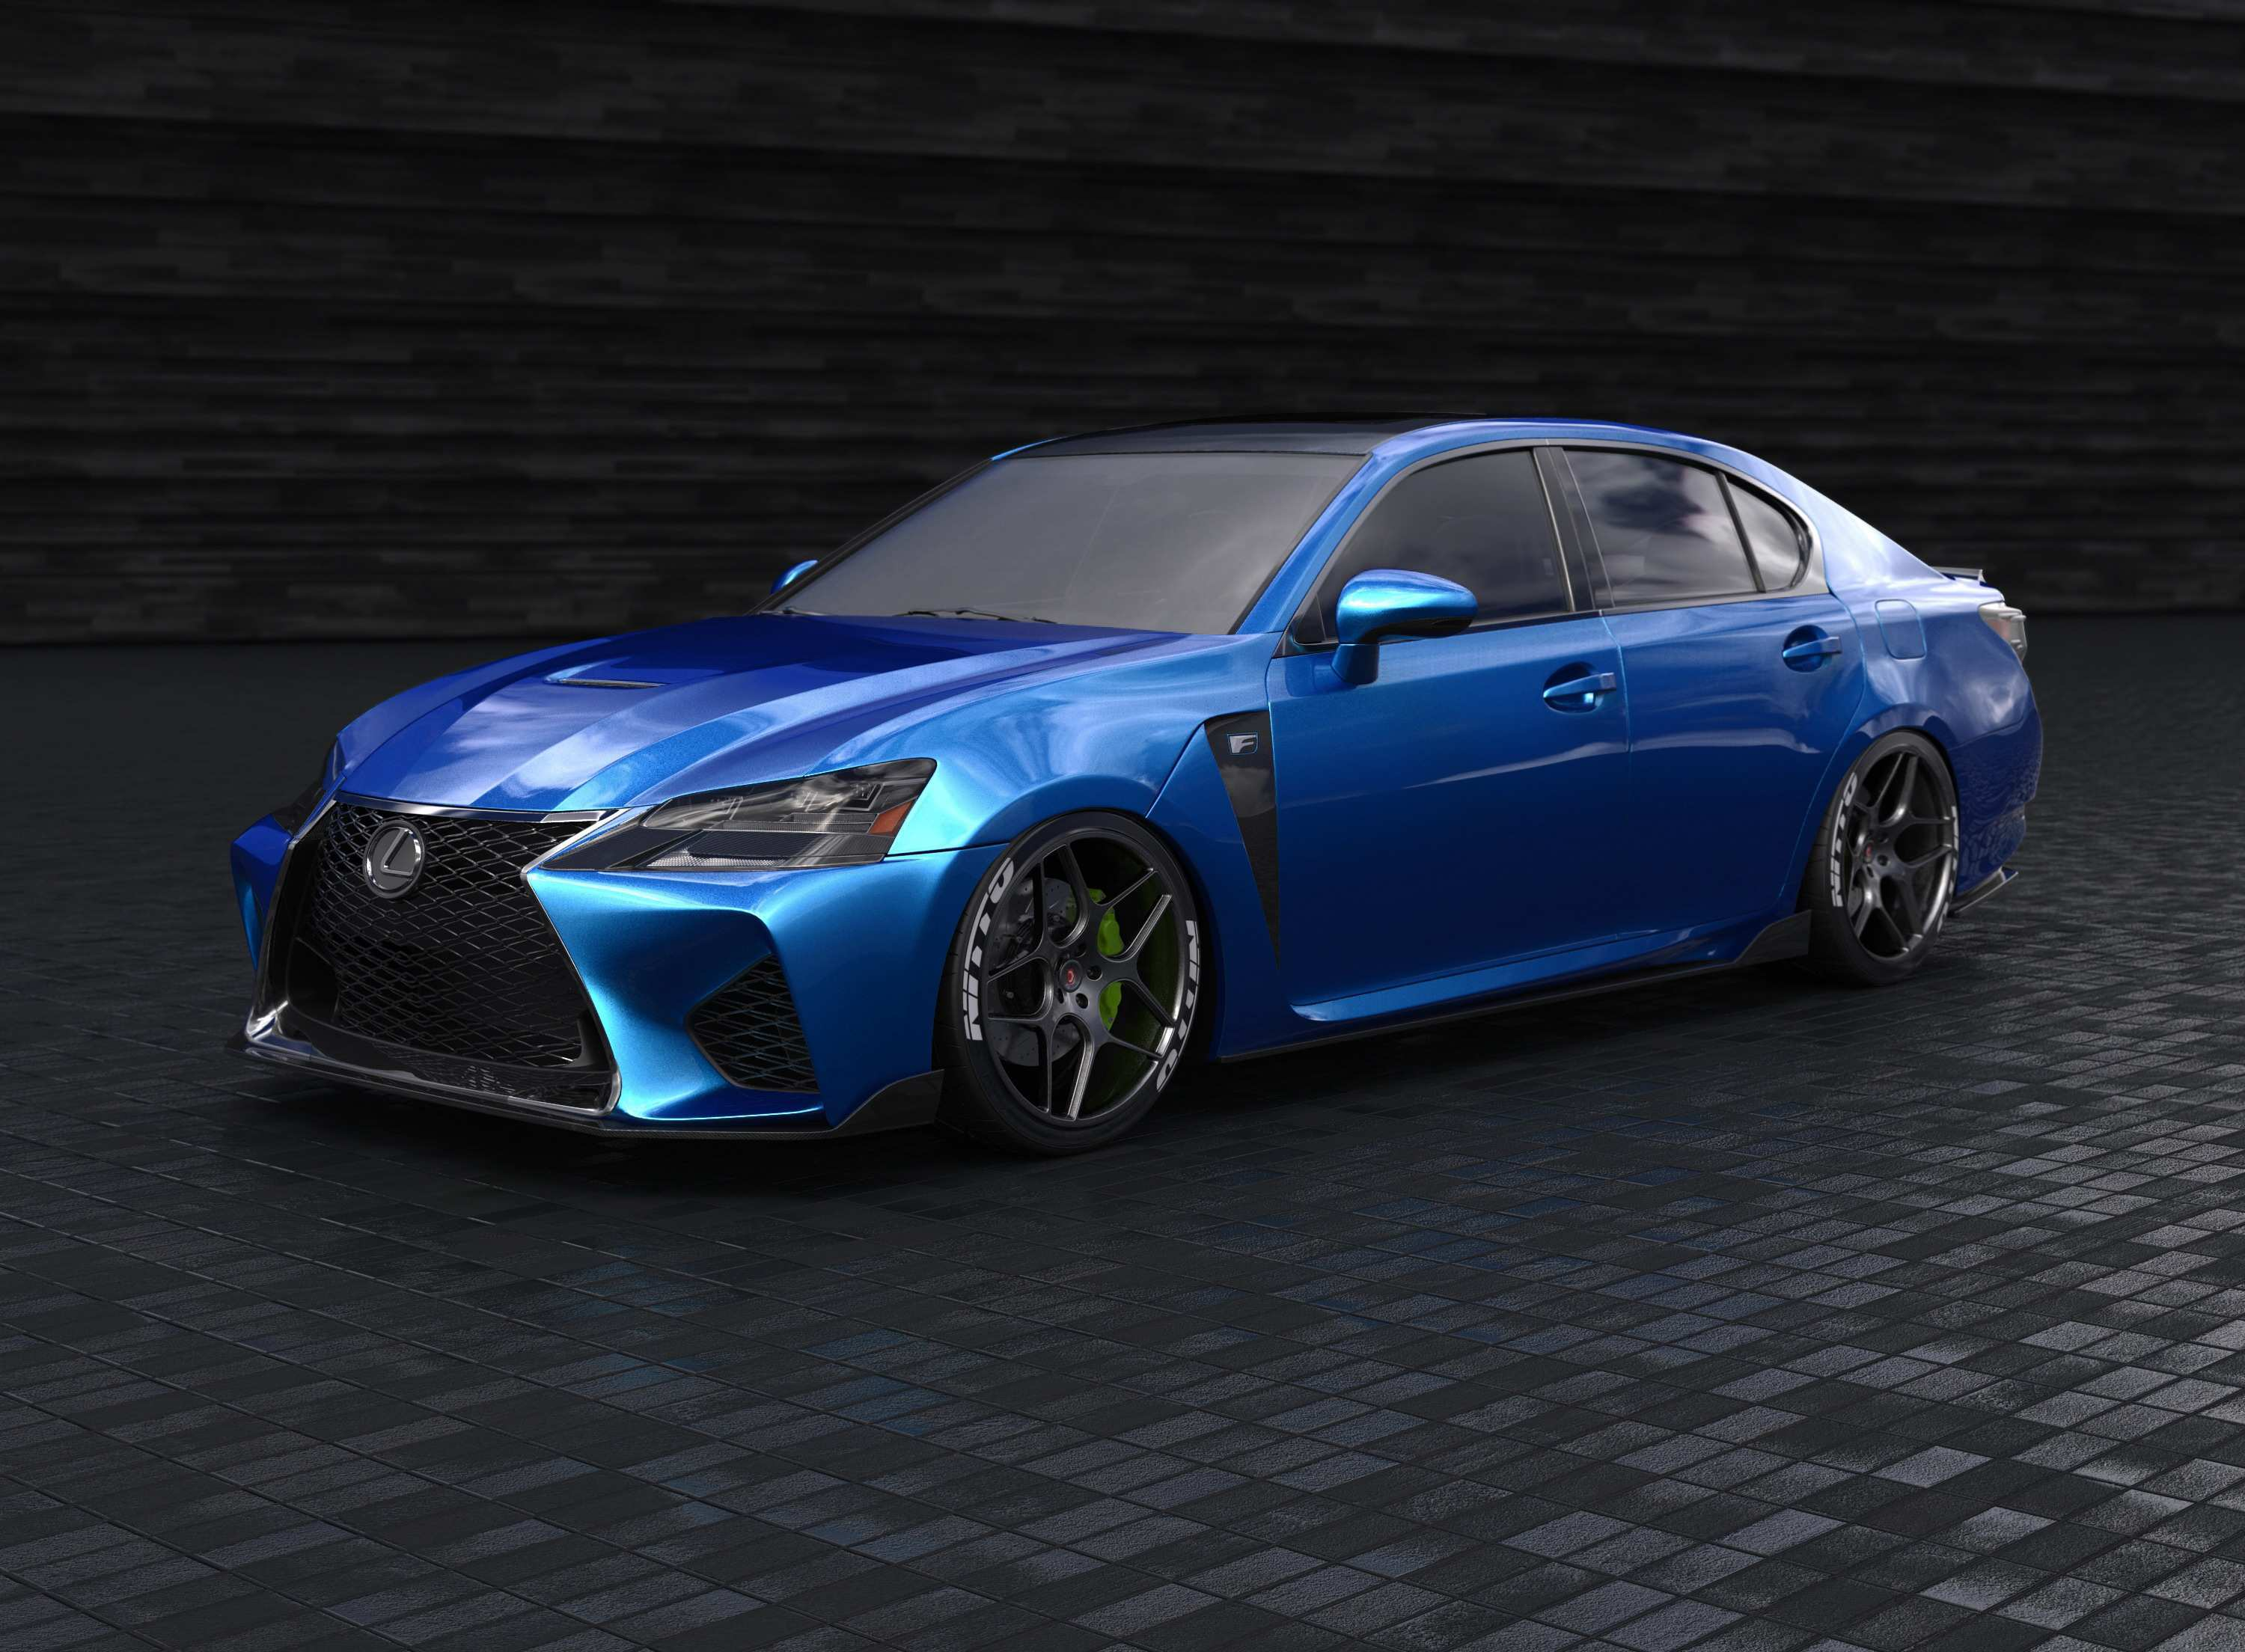 49 Best 2020 Lexus GS F Interior